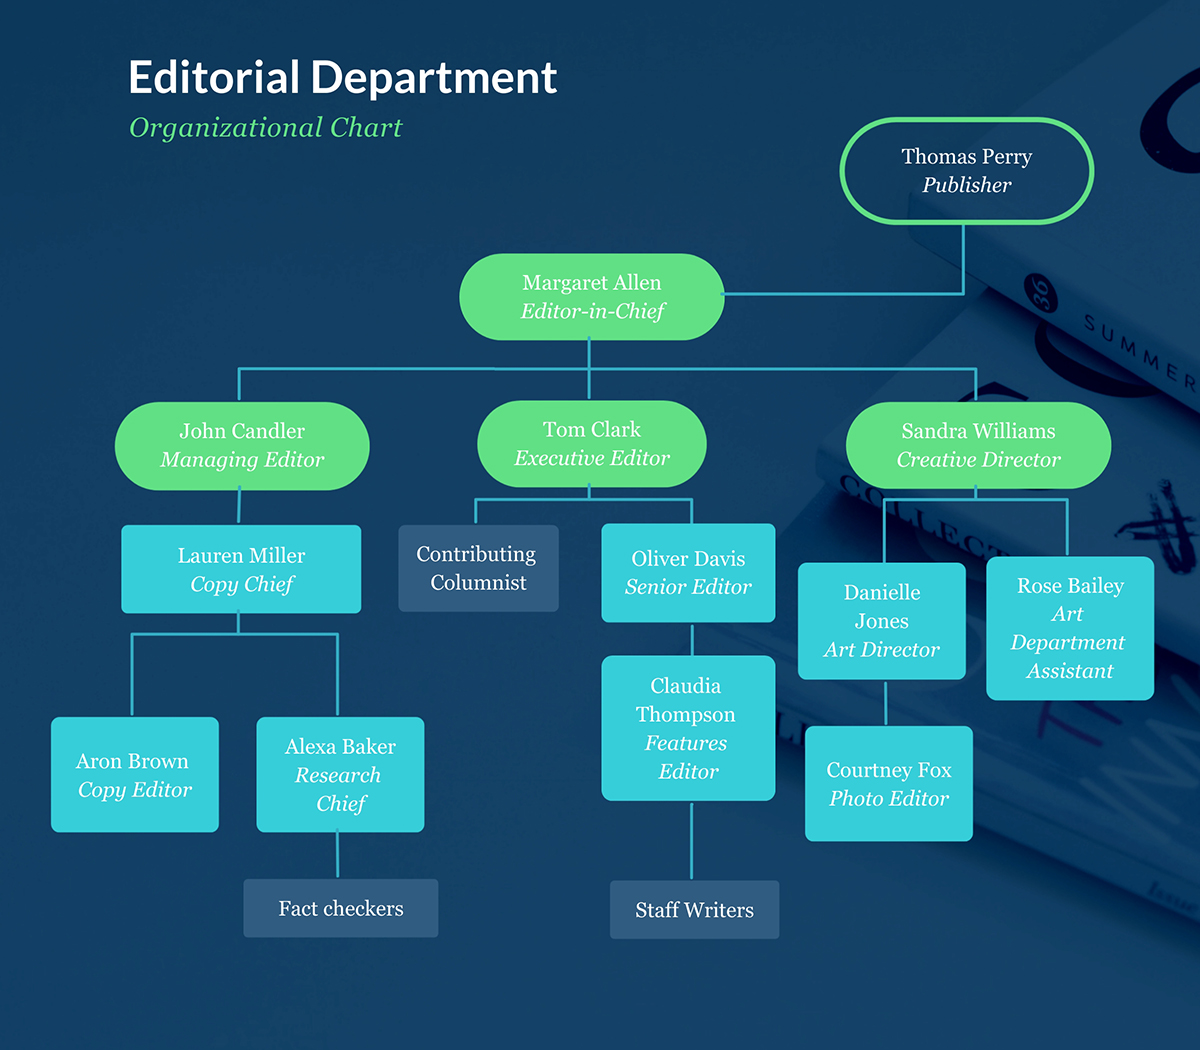 An editorial department organizational chart template available in Visme.